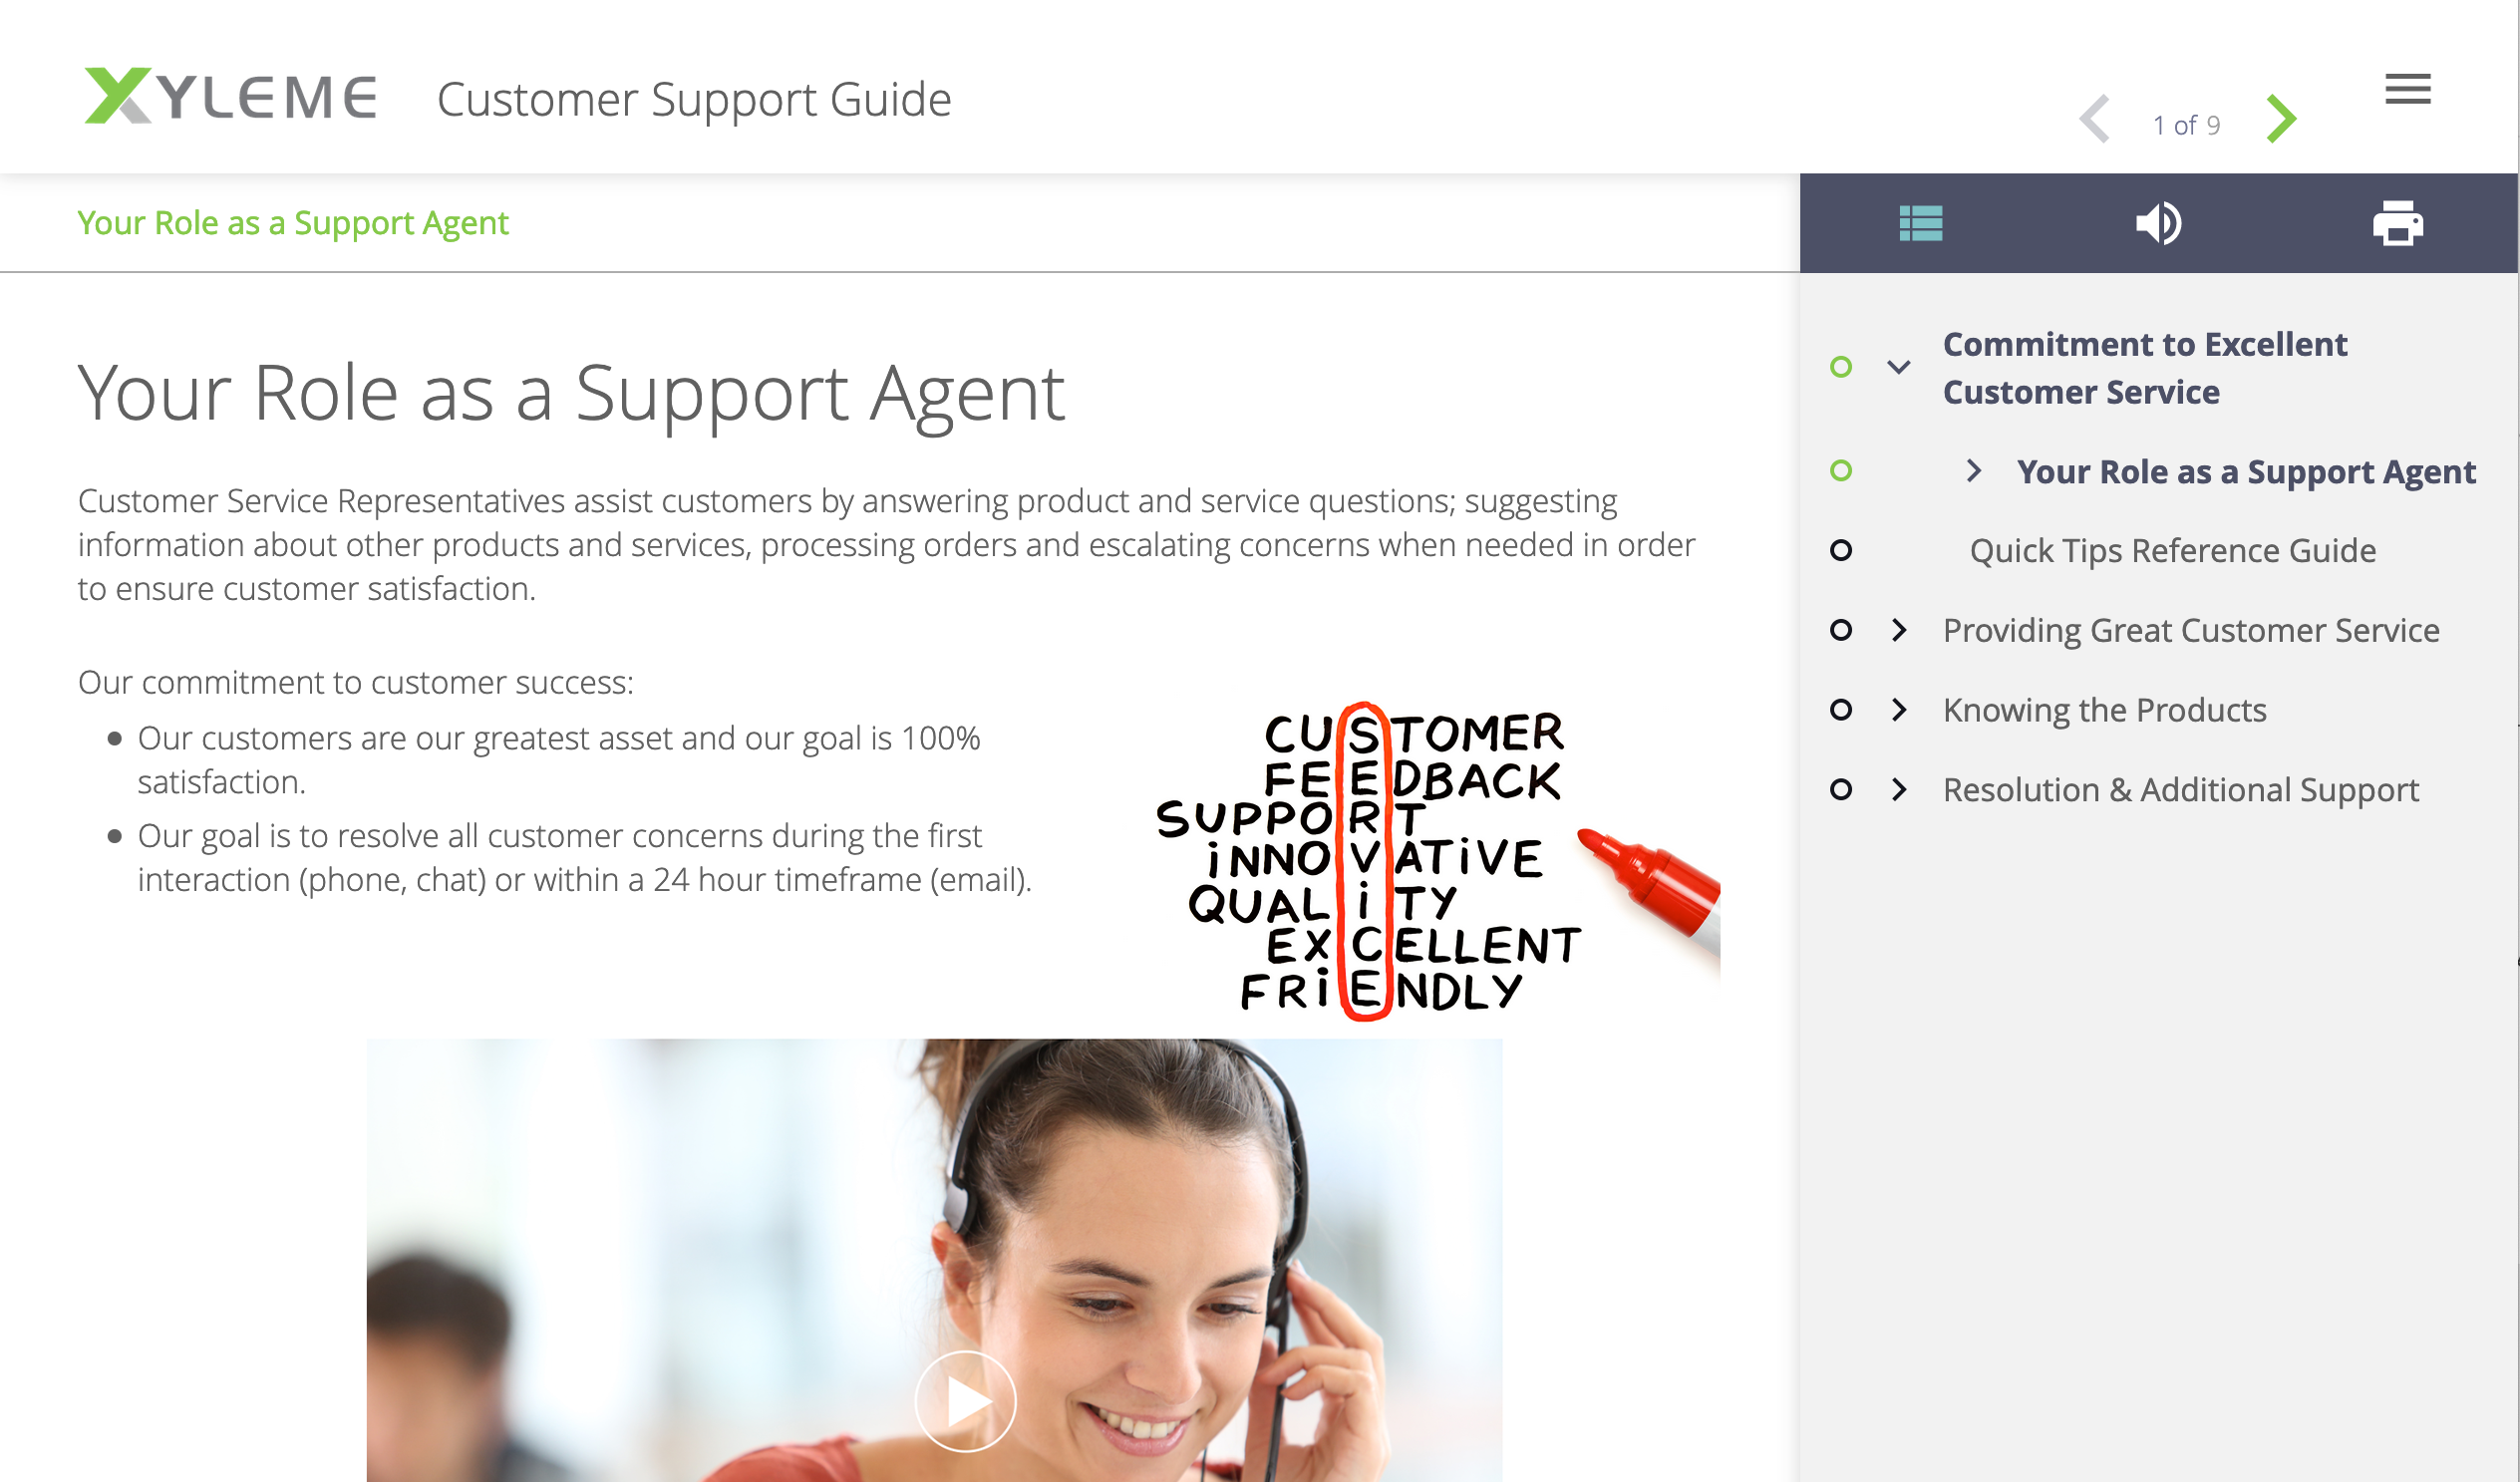 Xyleme customer support guide